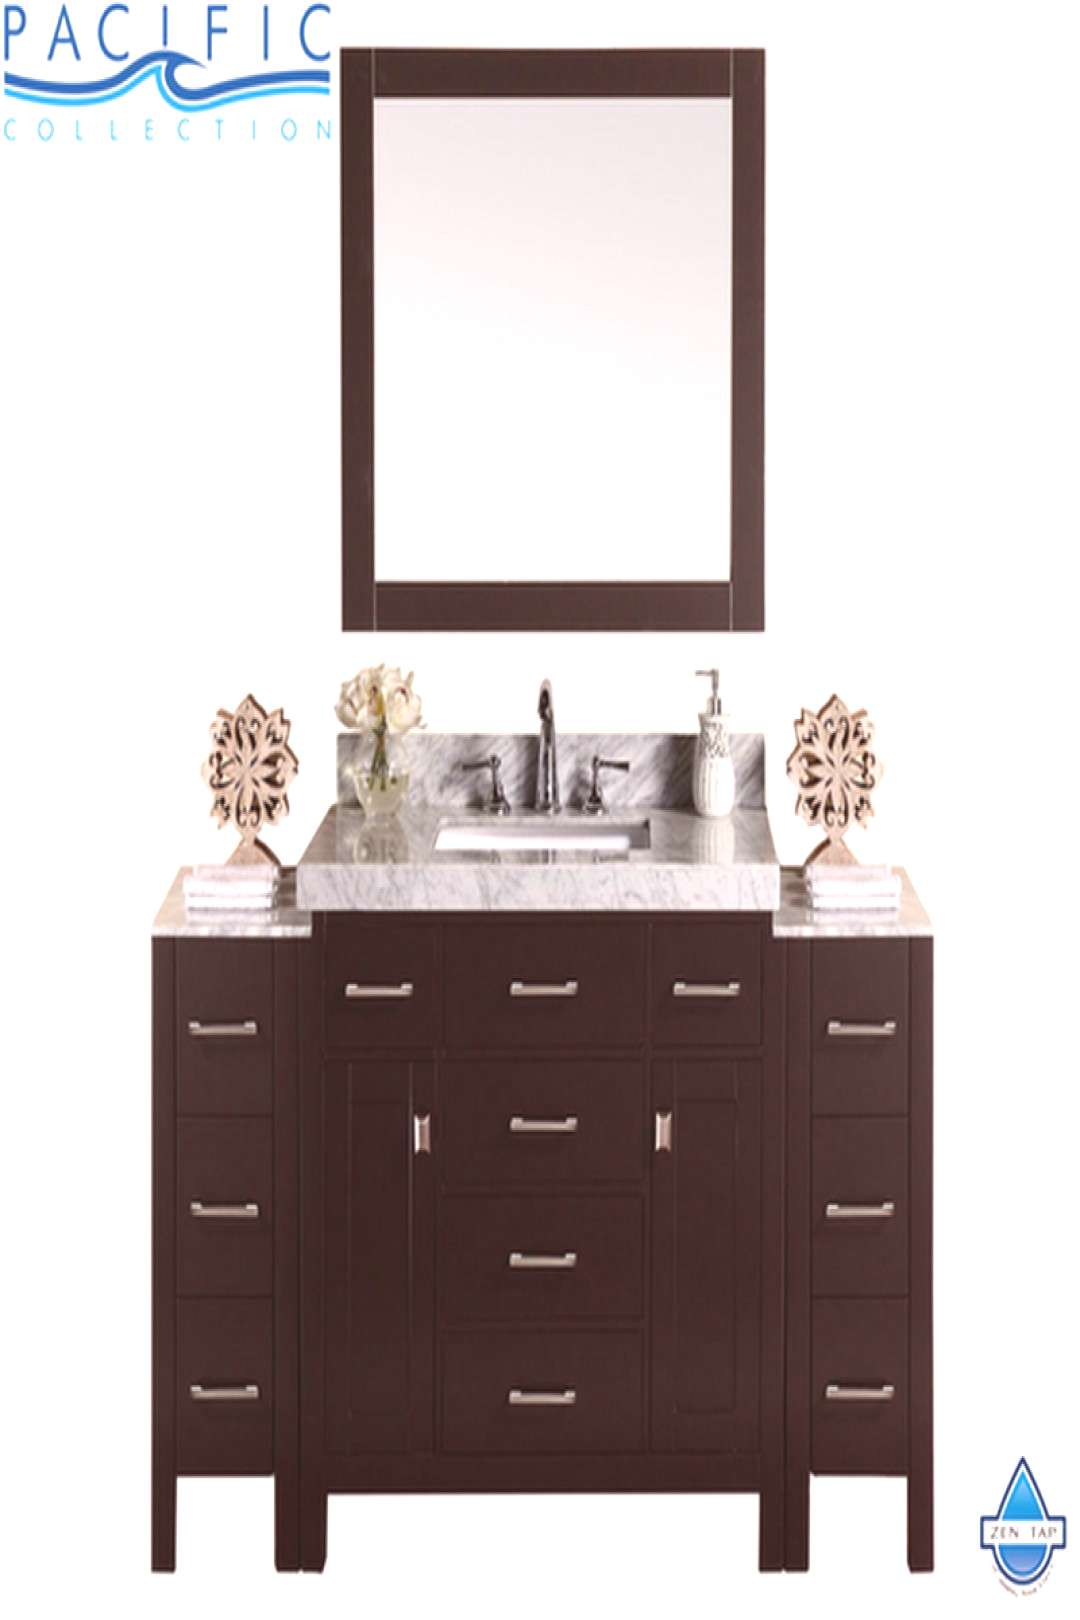 64quot Malibu Single Modern Bathroom Vanity with 2 Side Cabinets, White Marble Top ... 64quot Malibu Sing